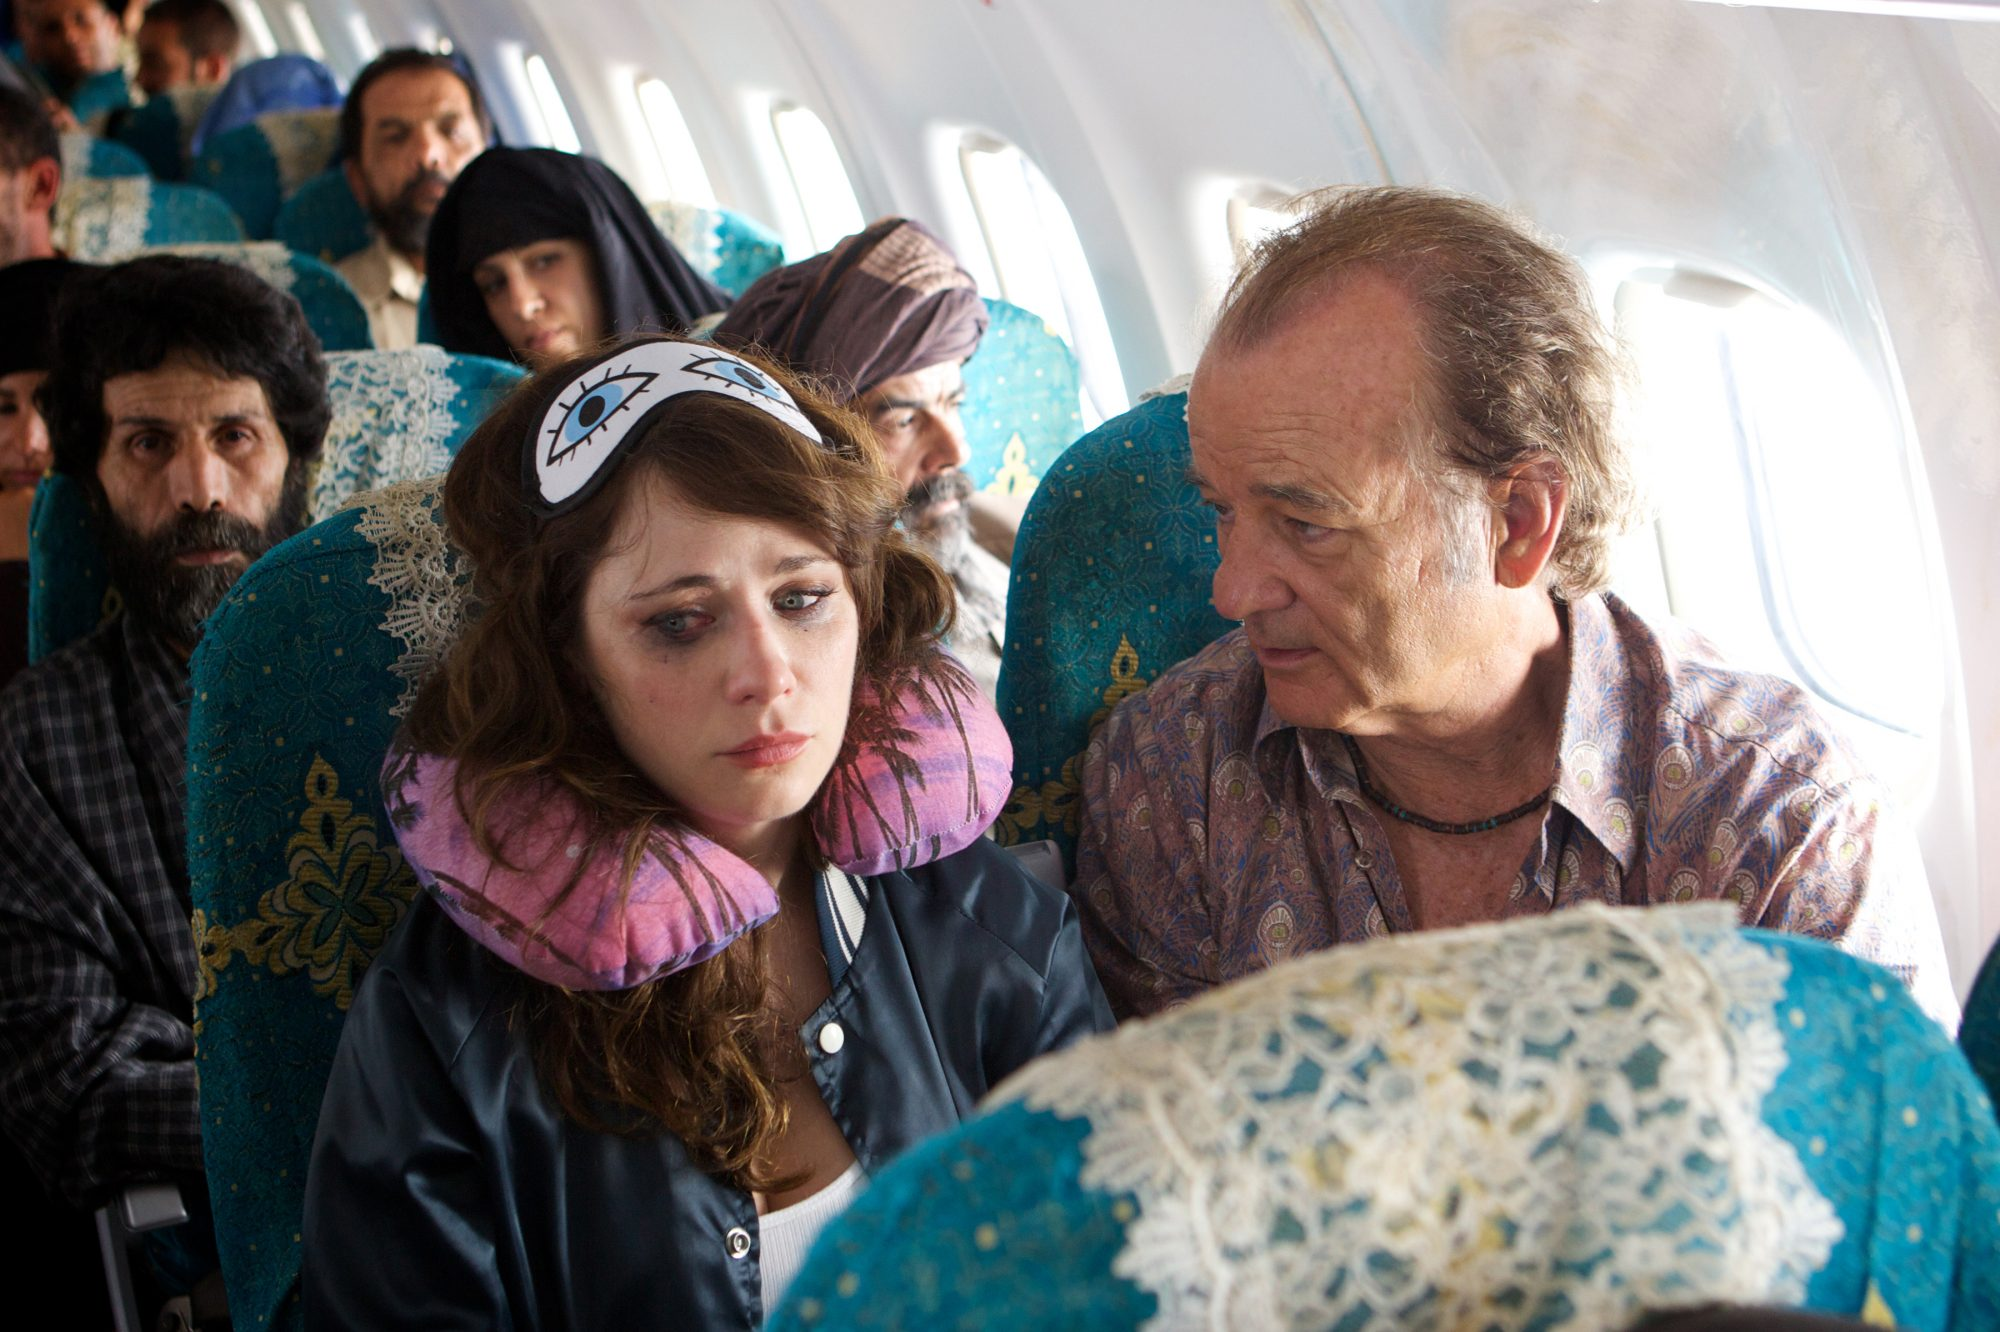 rock-the-kasbah-zooey-deschanel-bill-murray.jpg